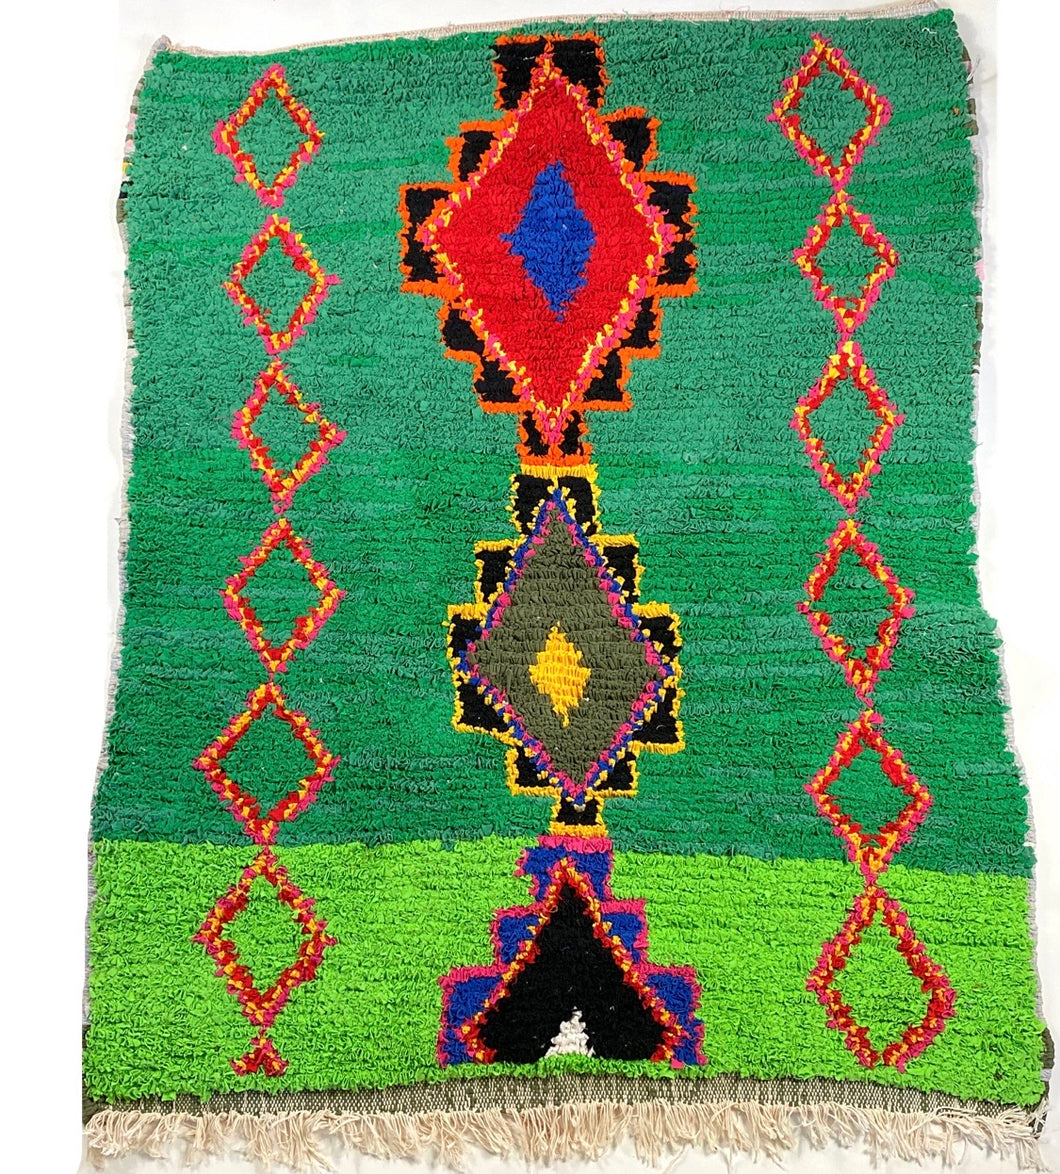 Colorful Moroccan Boucherouite Rug - 5' x 4'11""